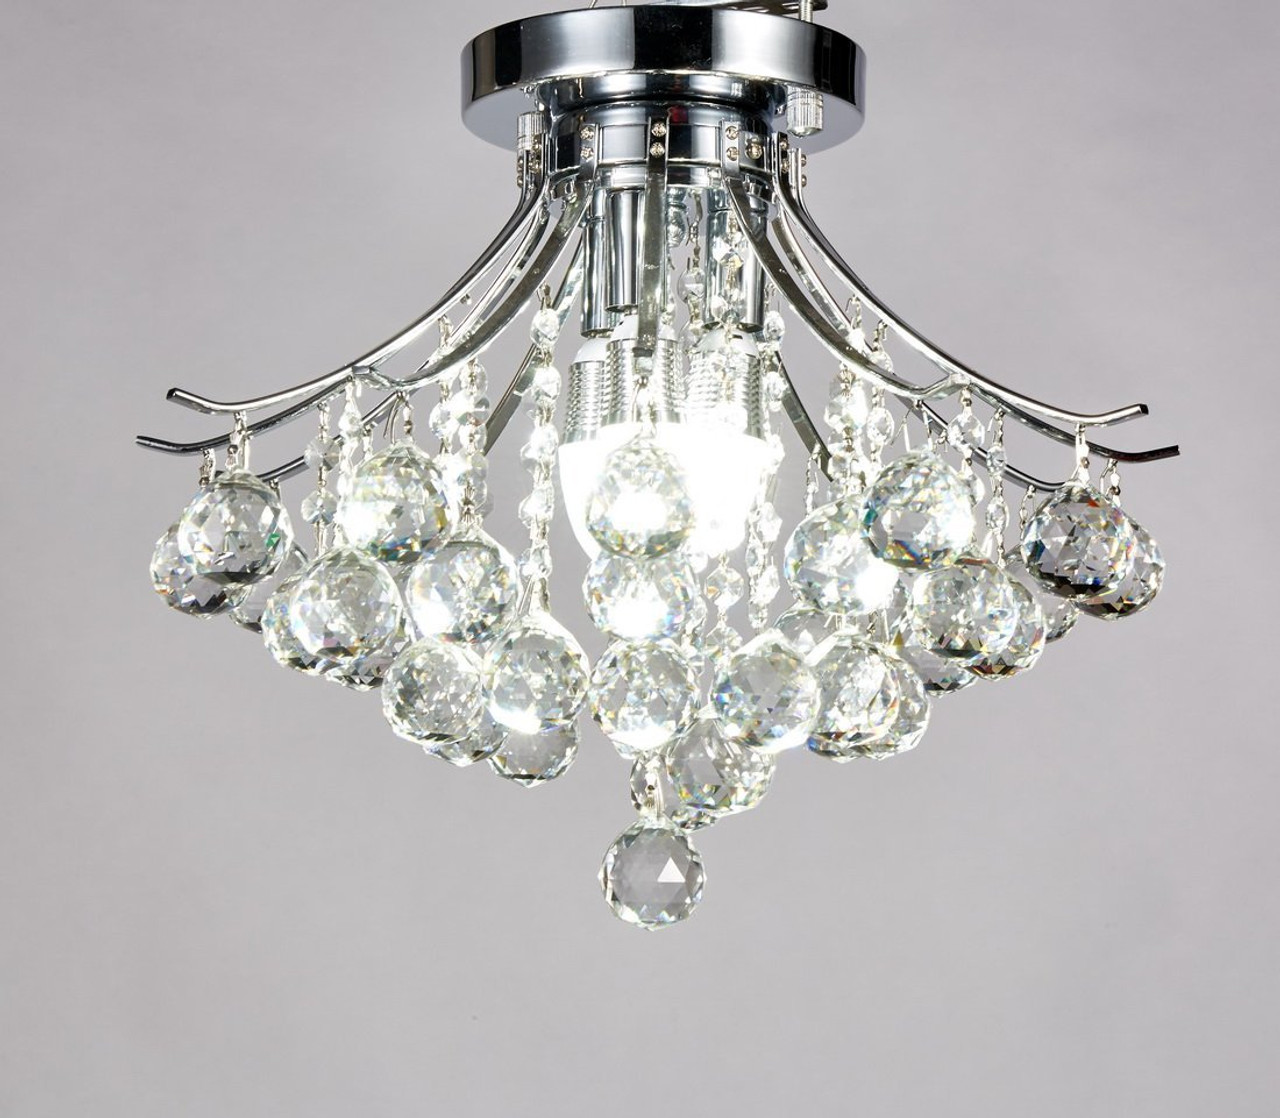 Diamond Life Modern Style 3-Light Chrome Finish Crystal Chandelier ...